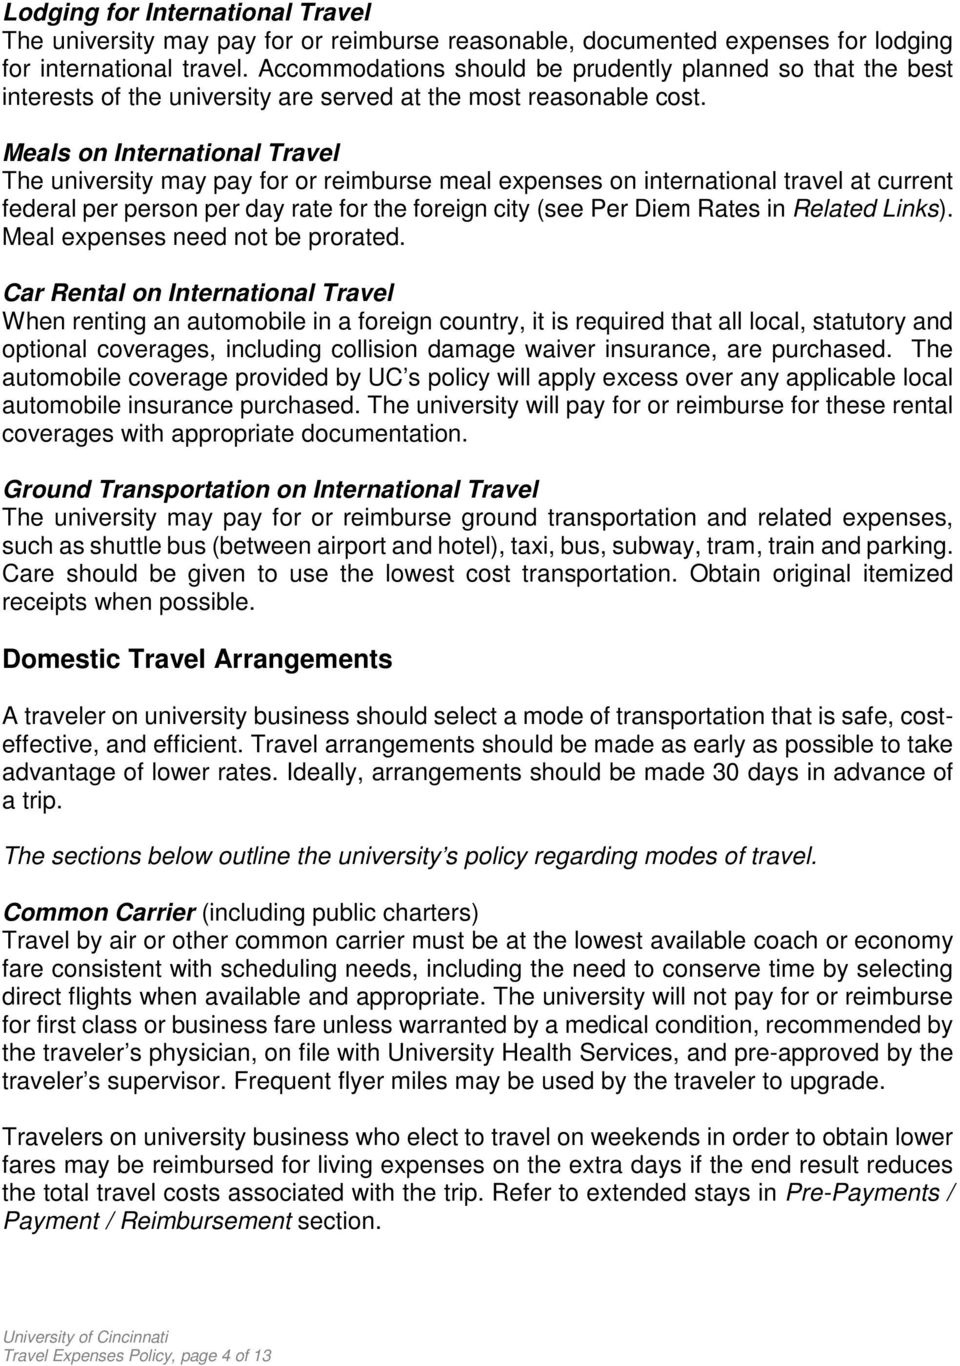 Meals on International Travel The university may pay for or reimburse meal expenses on international travel at current federal per person per day rate for the foreign city (see Per Diem Rates in